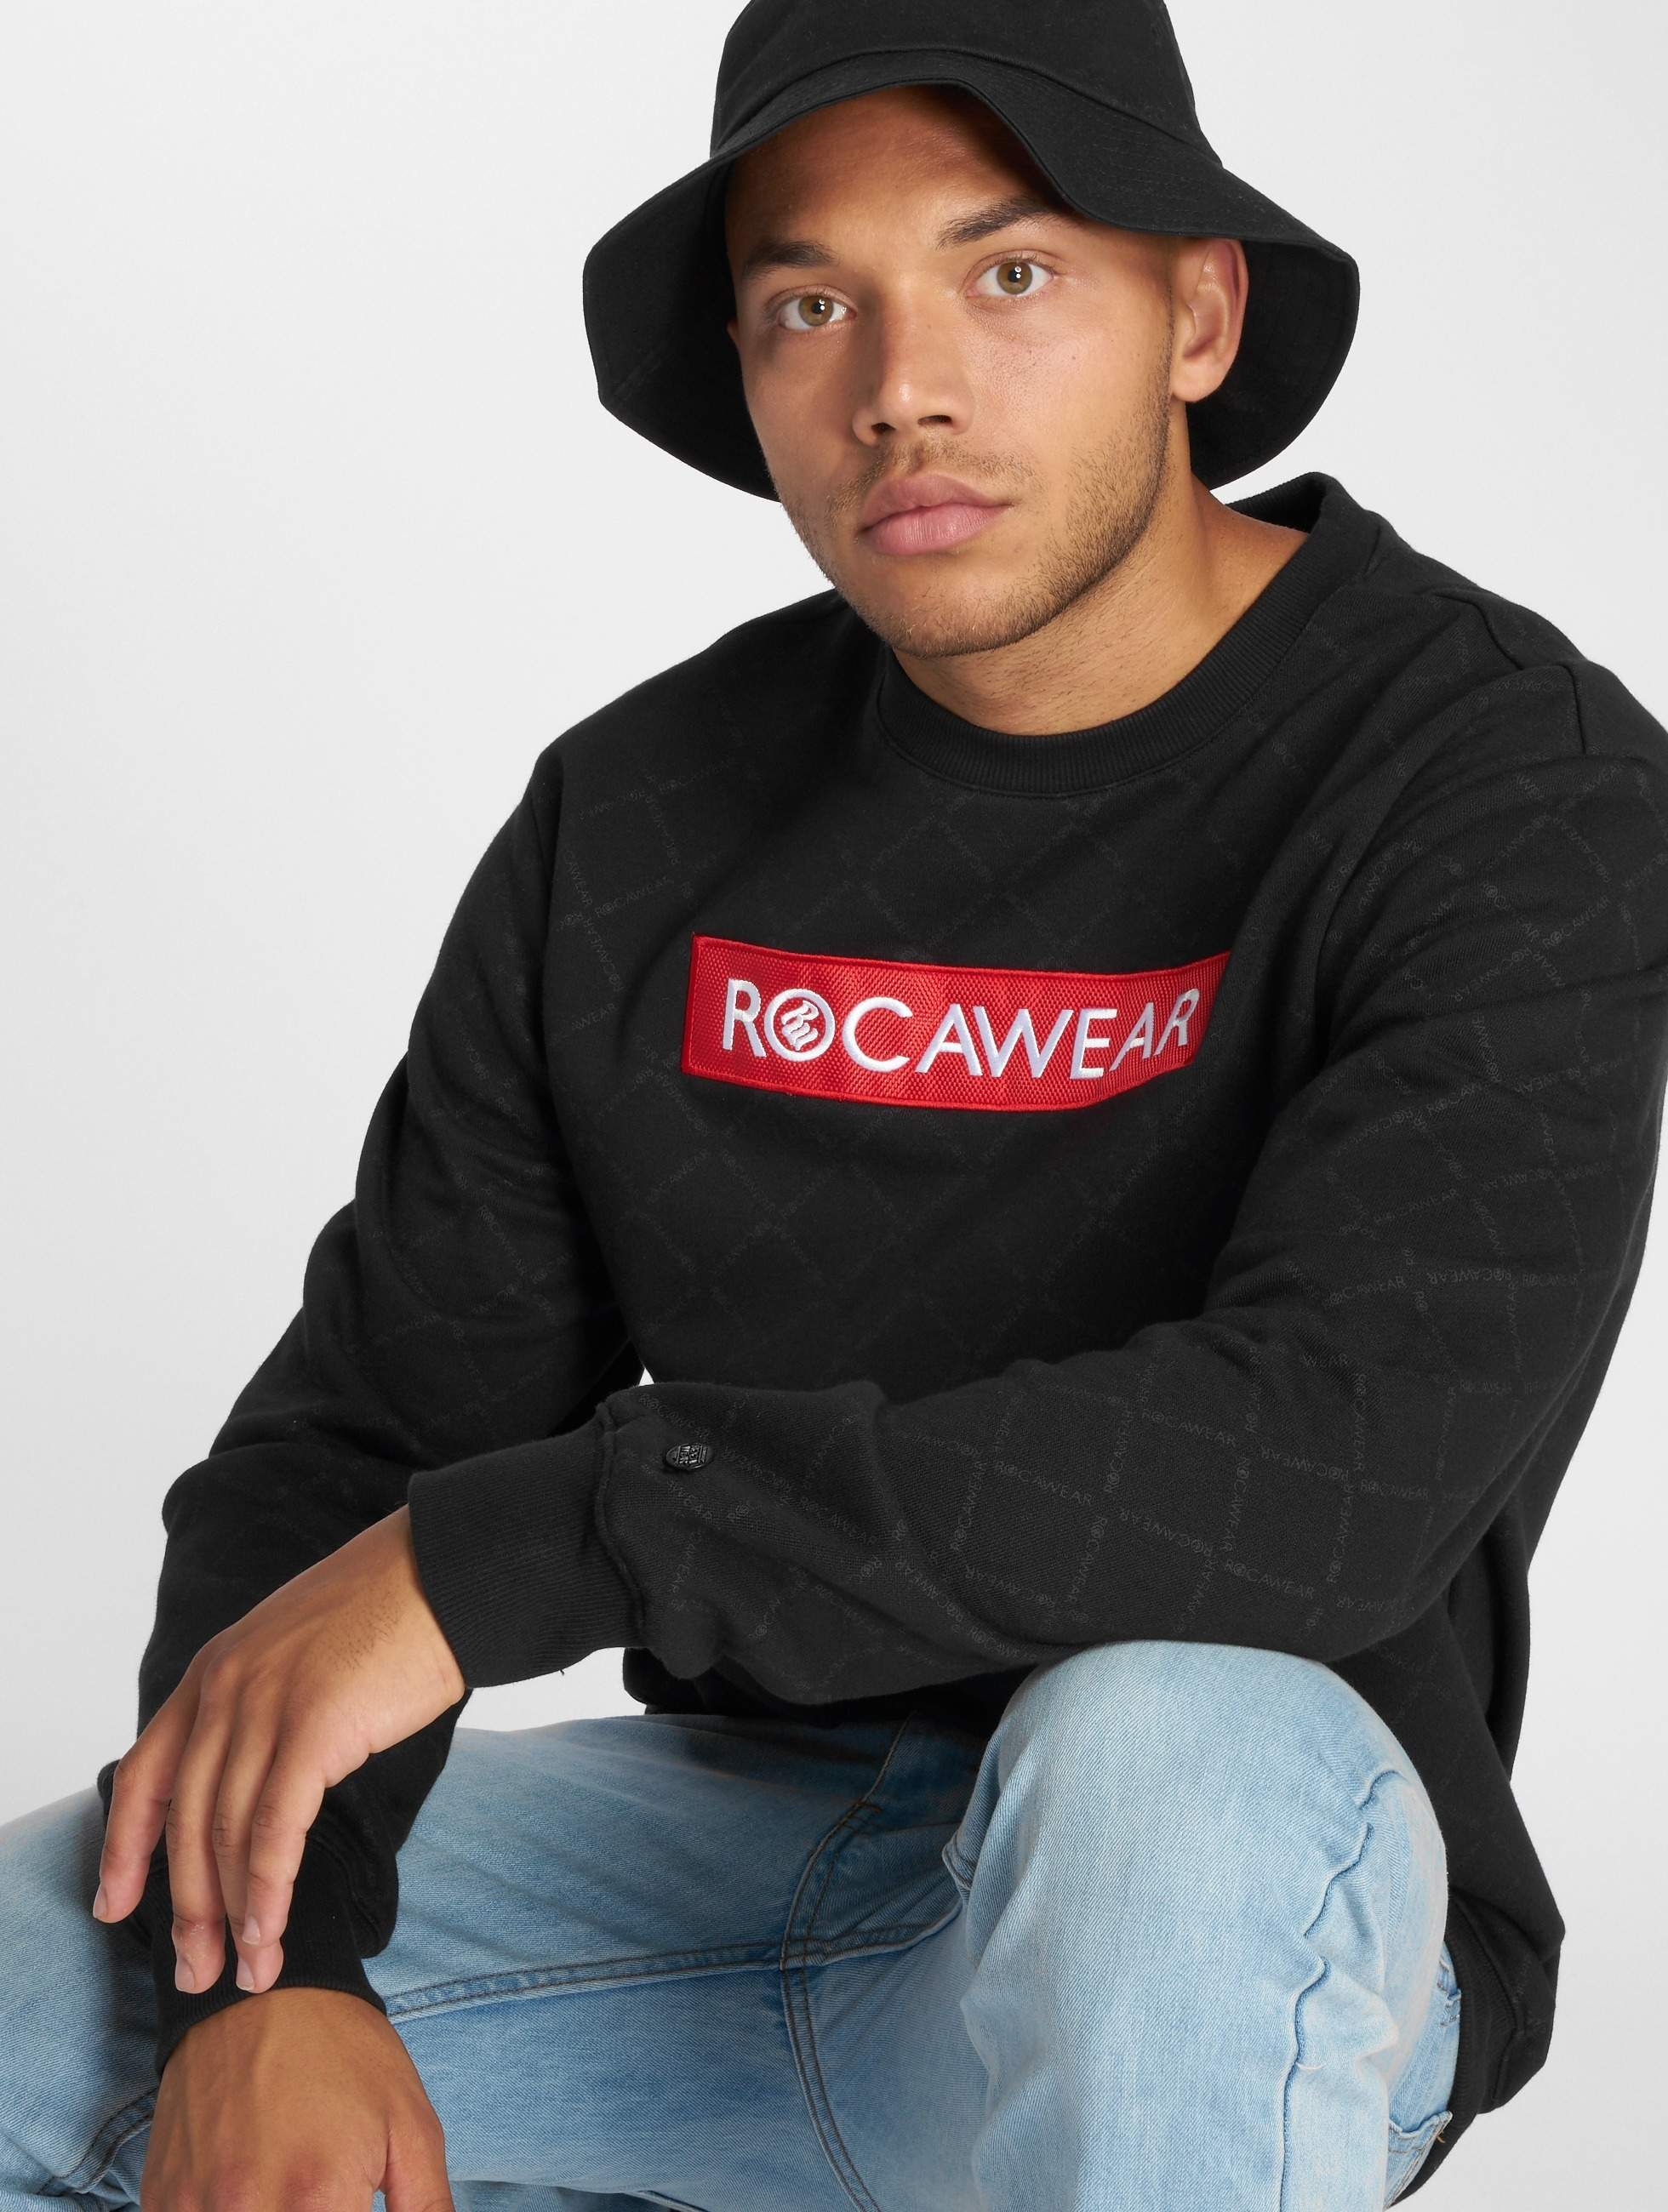 Rocawear / Jumper Checked in black XL